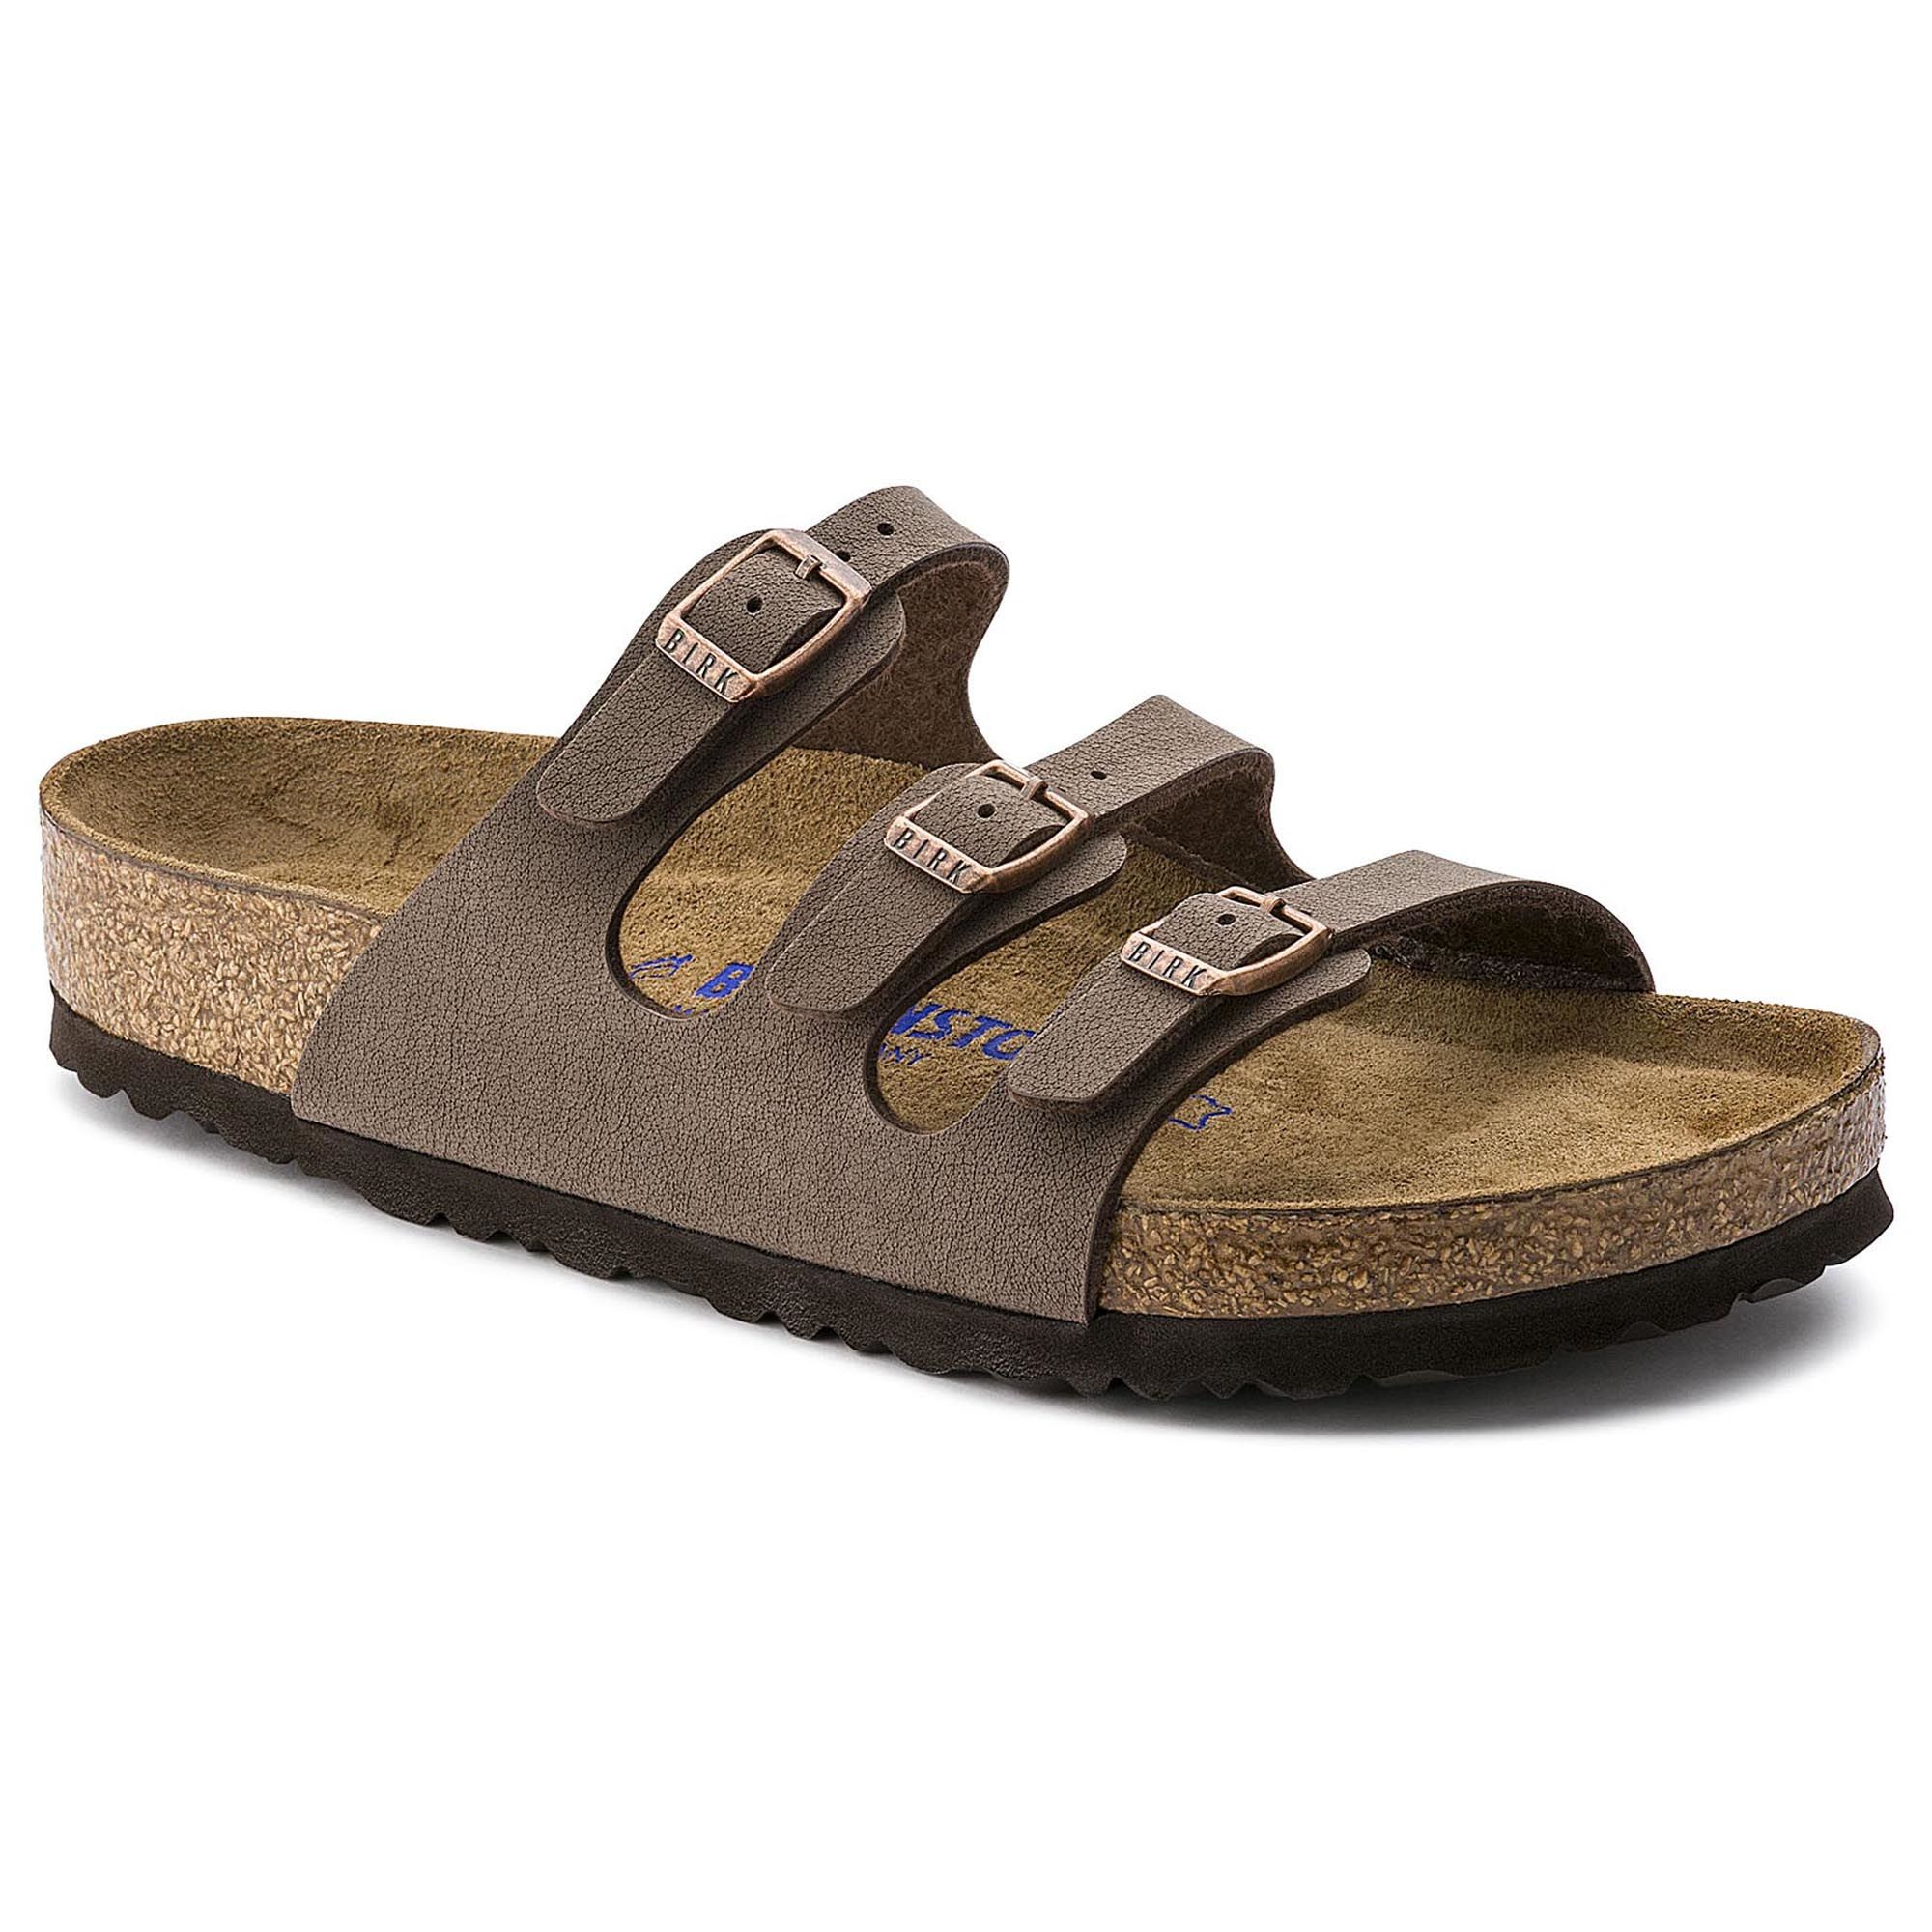 aaa3cfa2bc4a Birkenstock Florida Soft Footbed Birko-Flor Sandals - Women s with Free S H  — CampSaver